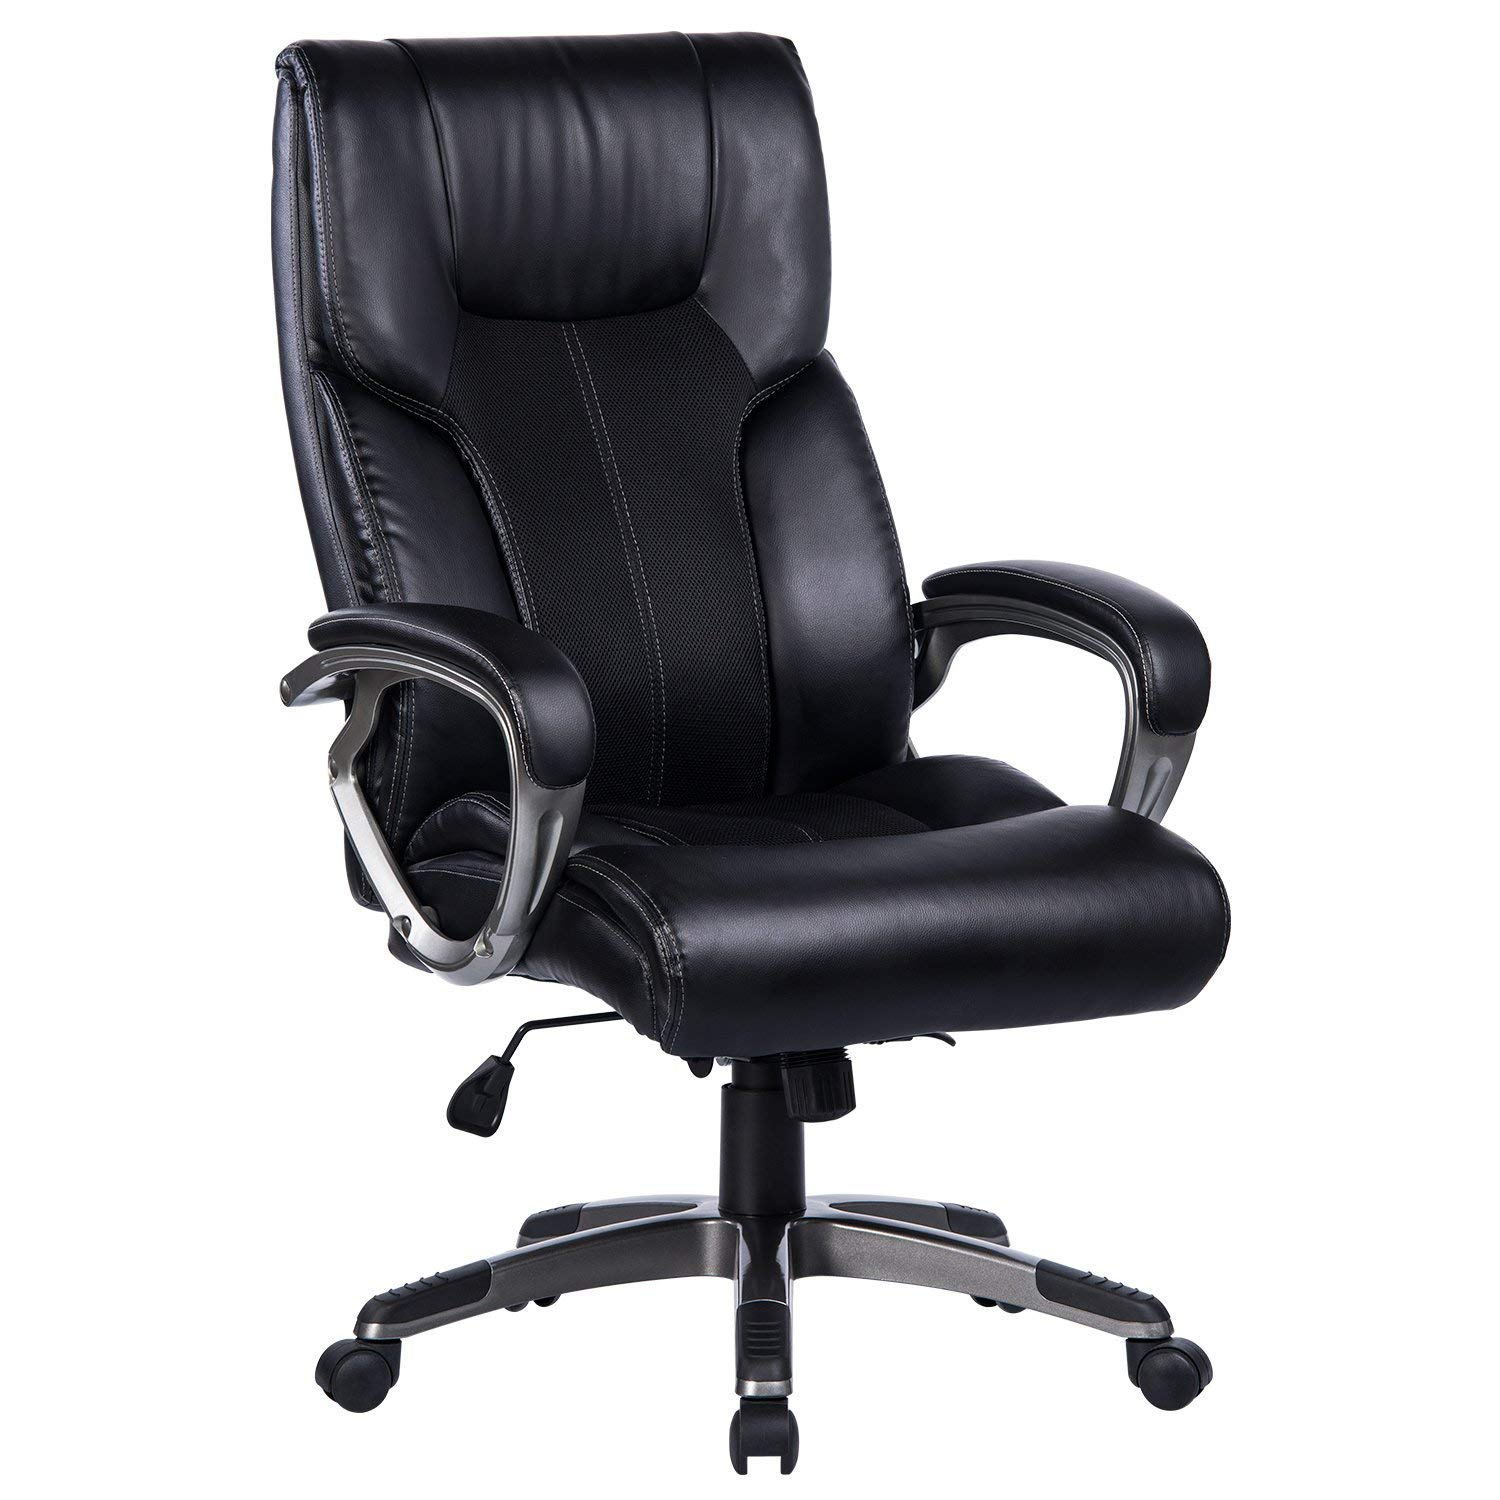 high back office chair reviews